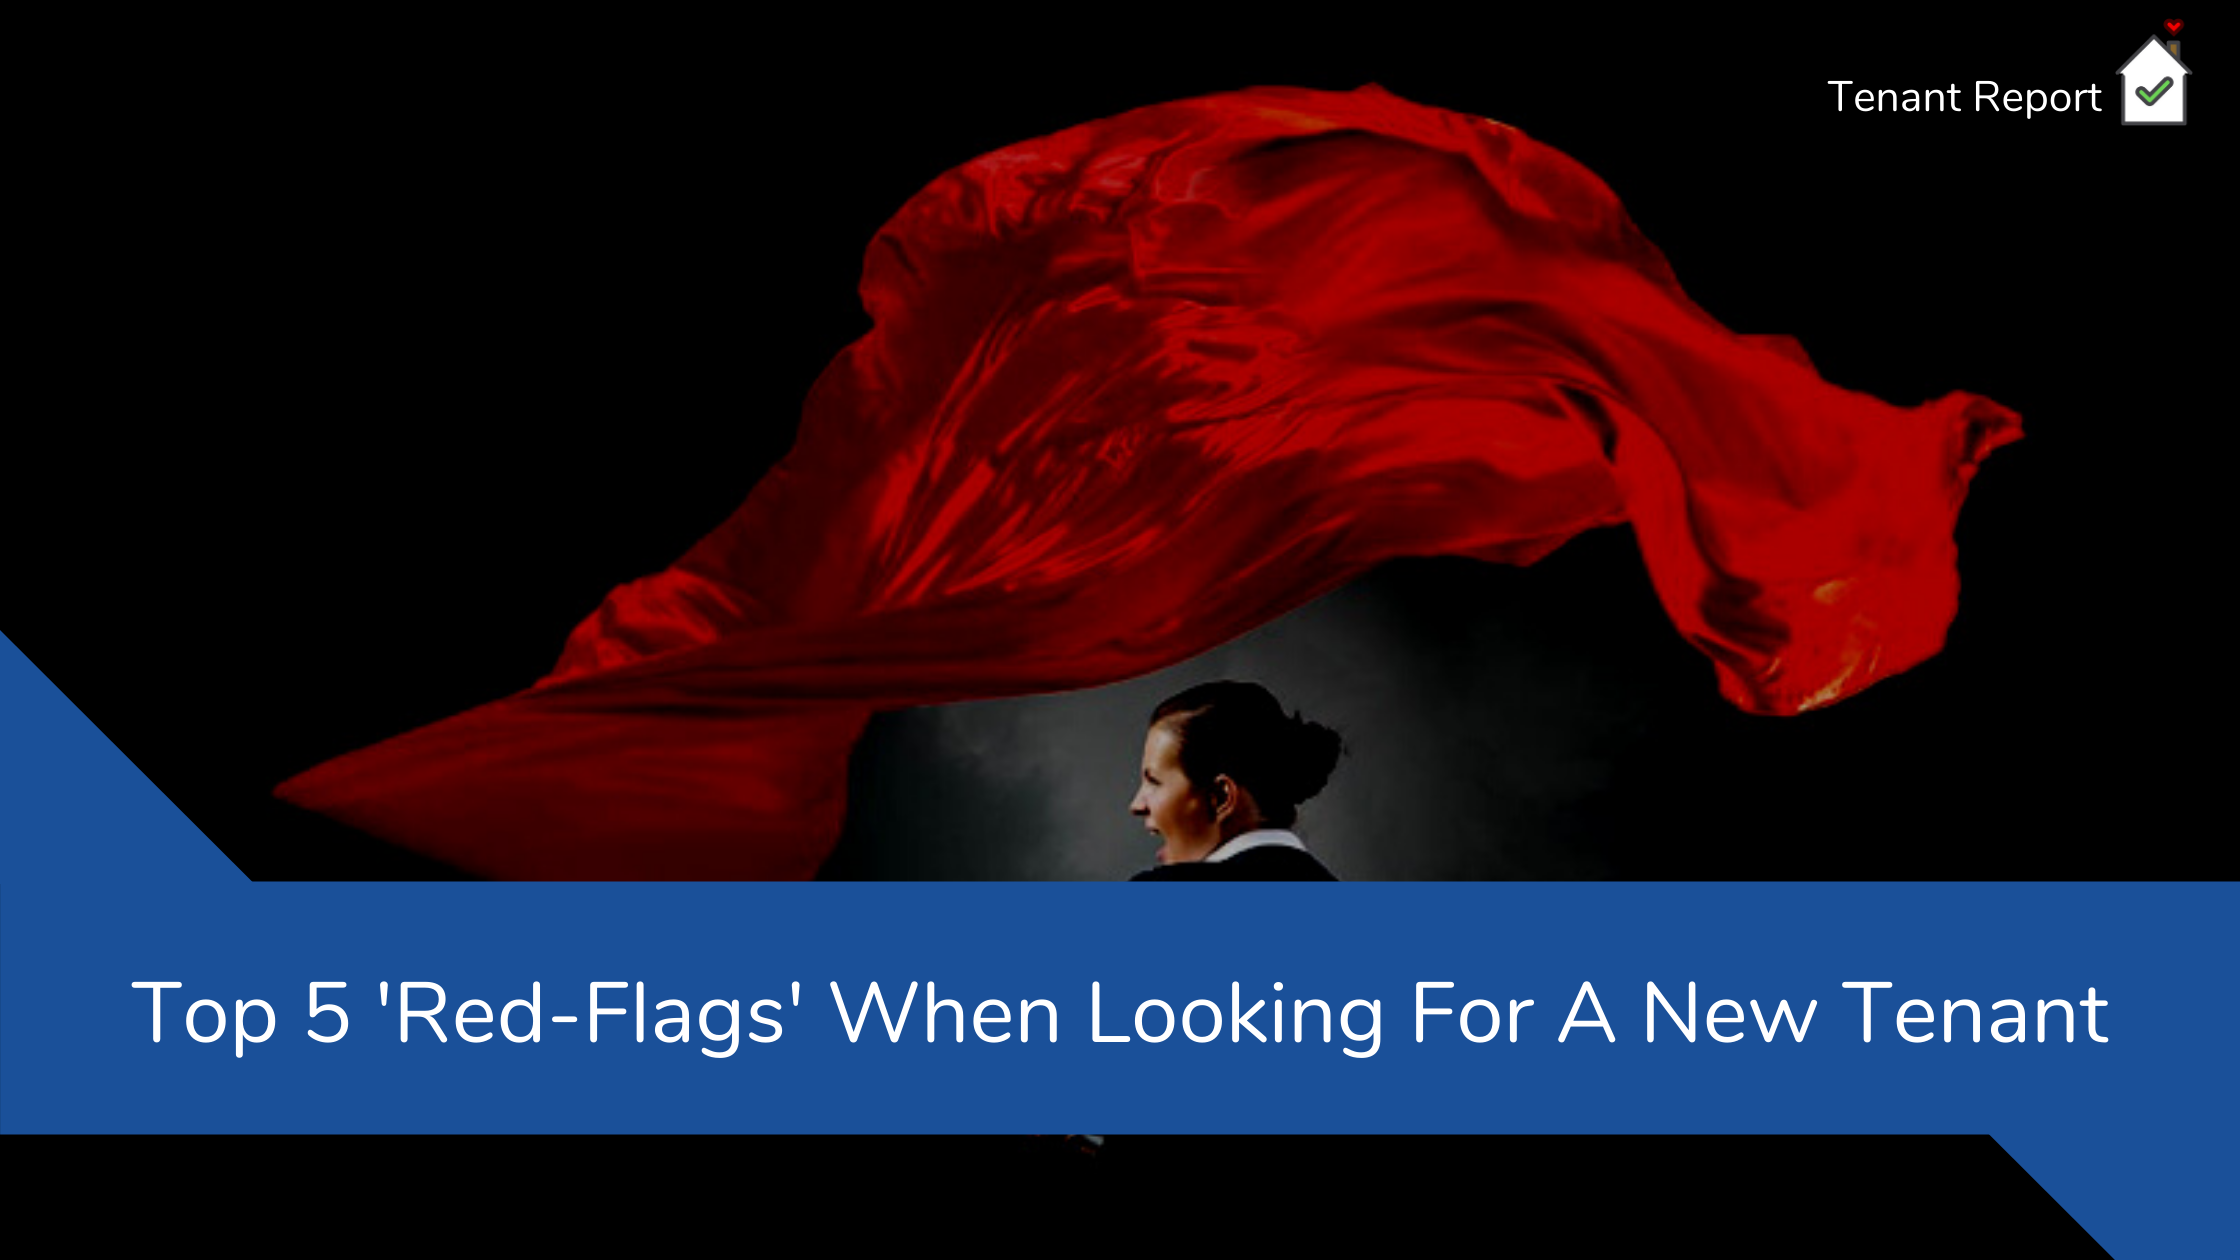 Tenant-Report-Top-5-Red-Flags